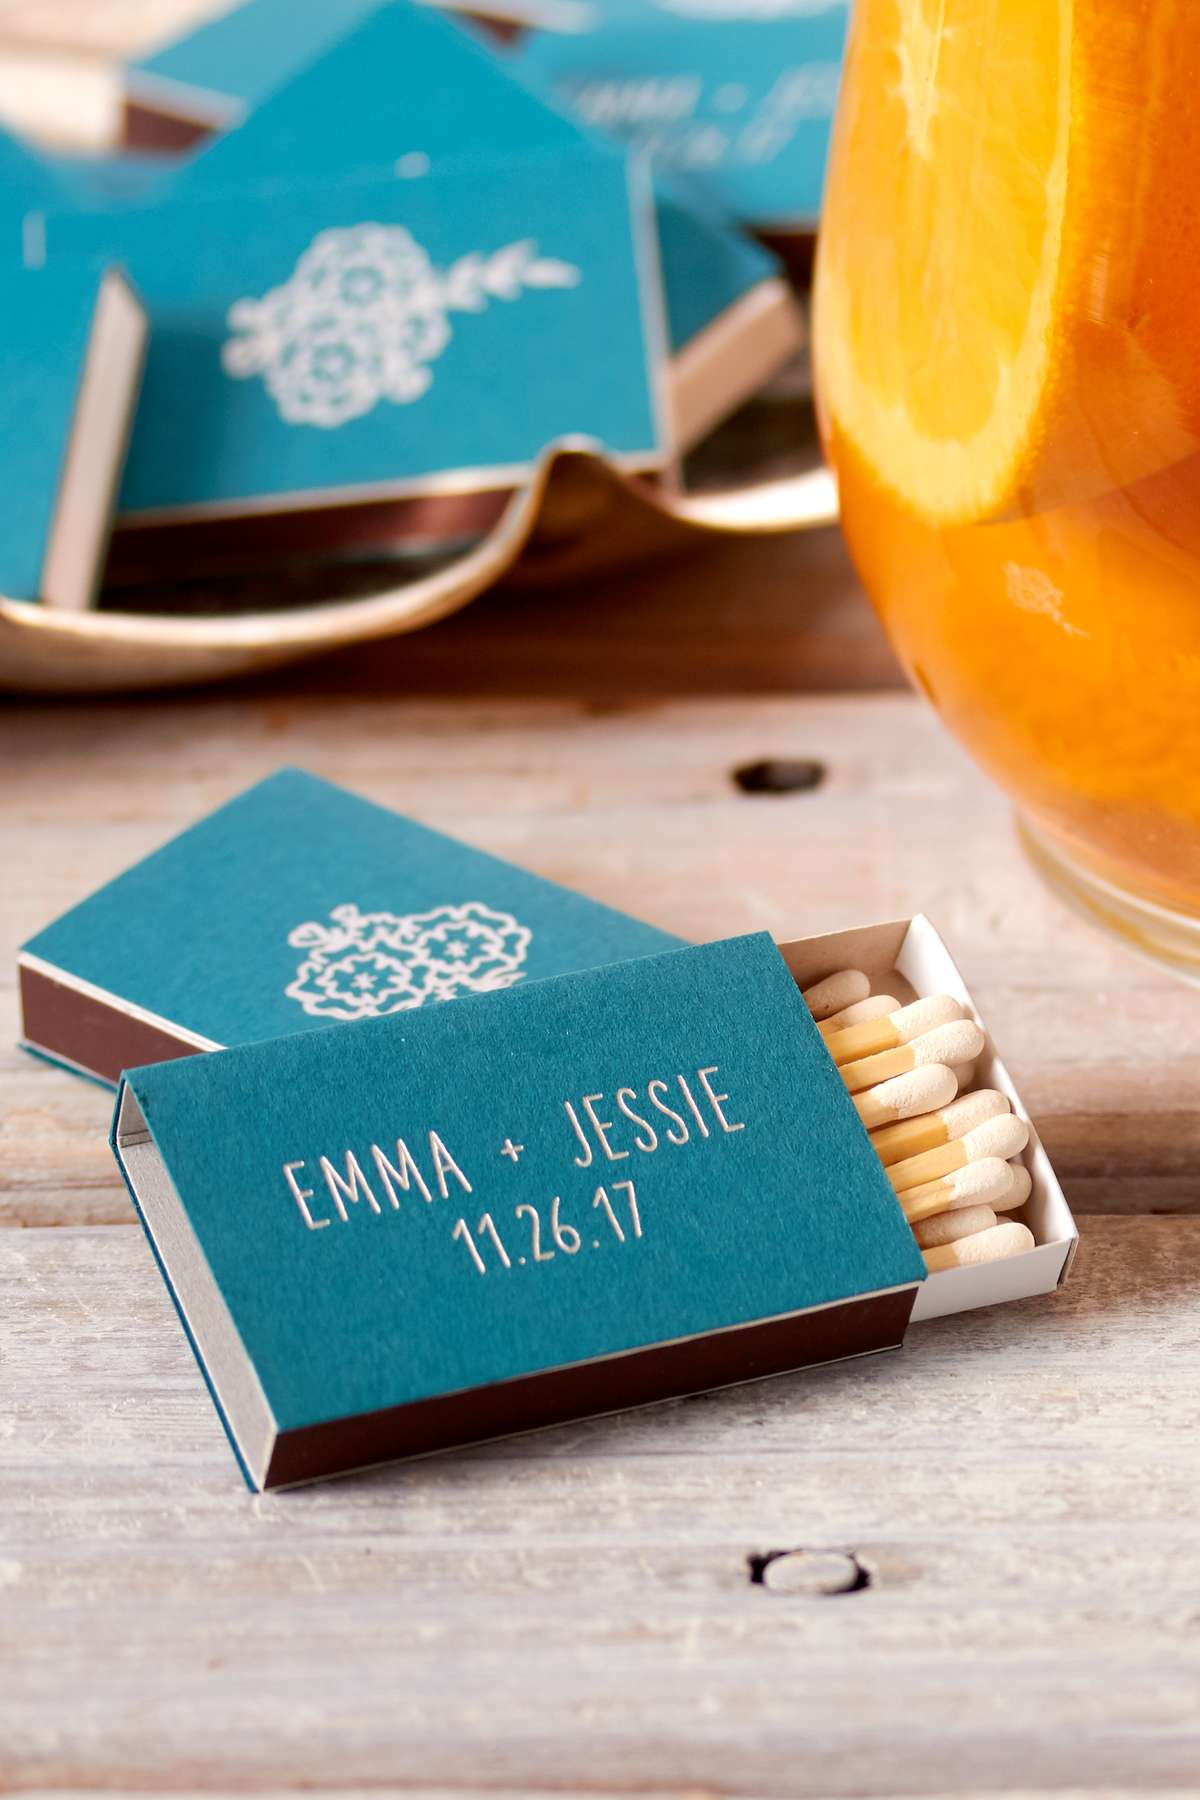 custom matches in teal for fall personalized wedding favors